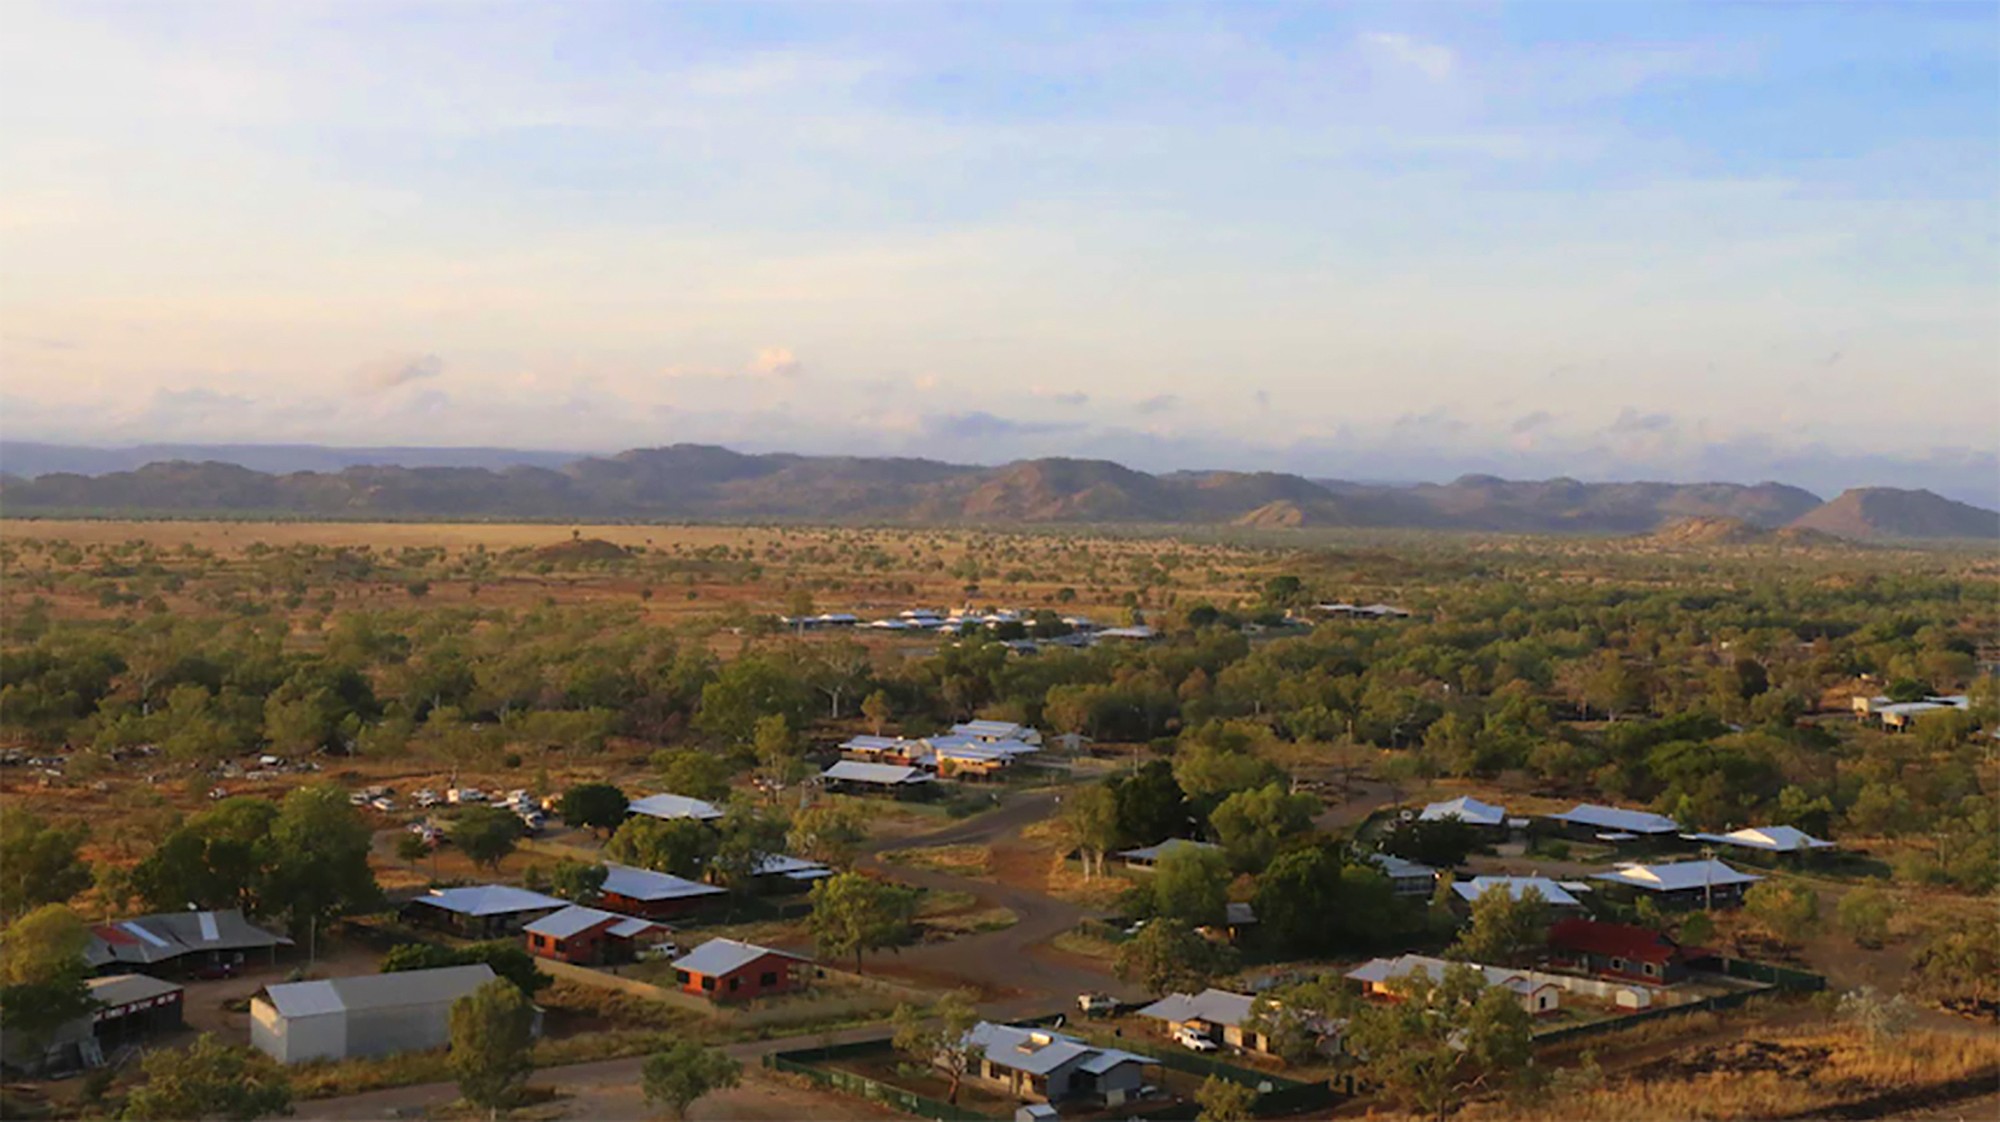 A community-based solution for Indigenous healthcare